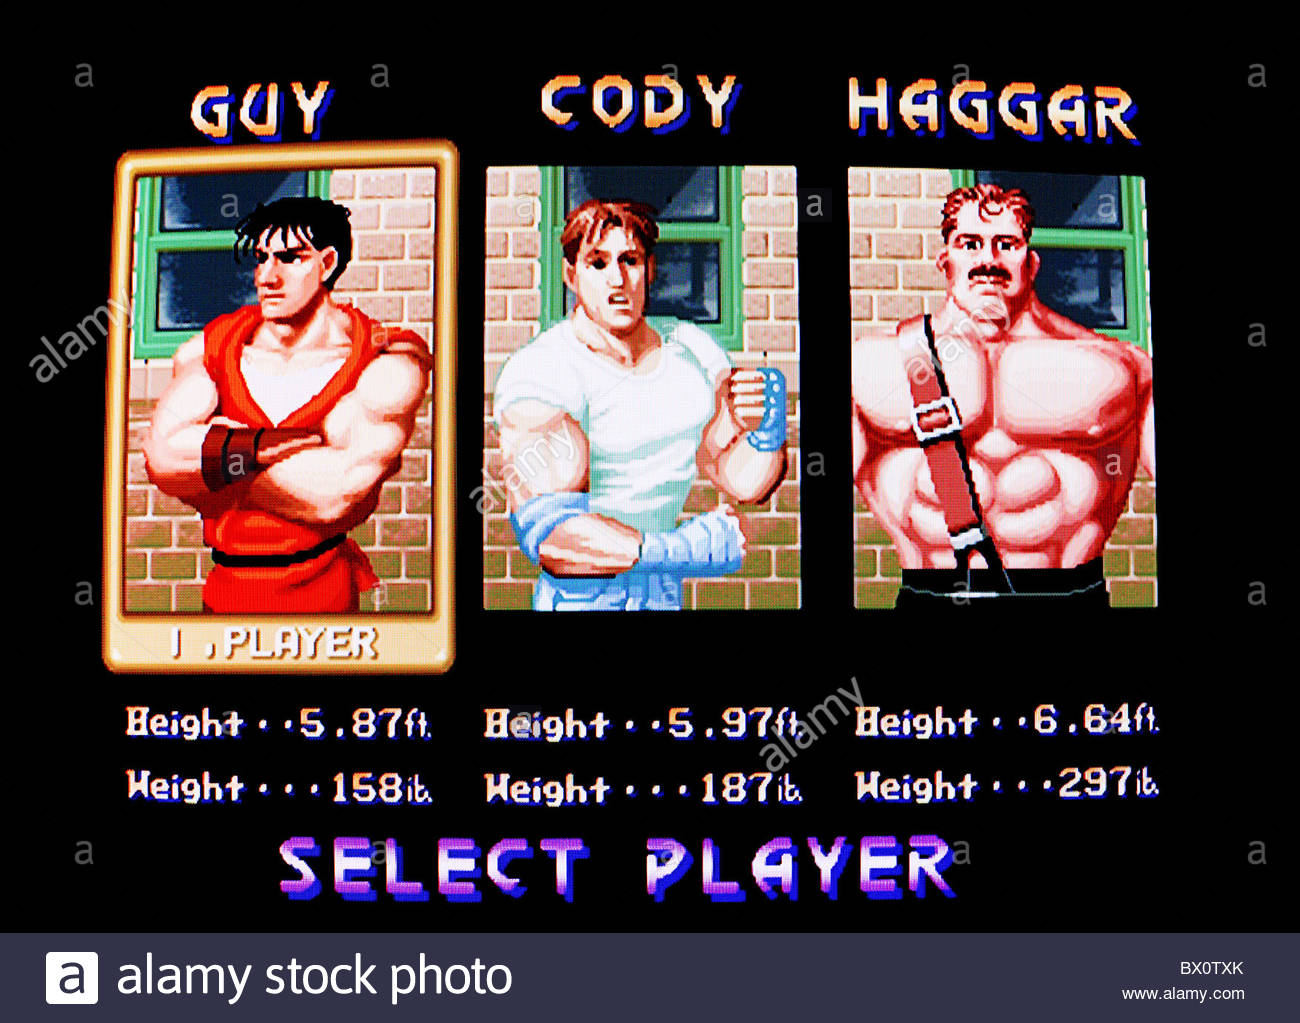 Final fight character select screen shot - Stock Image